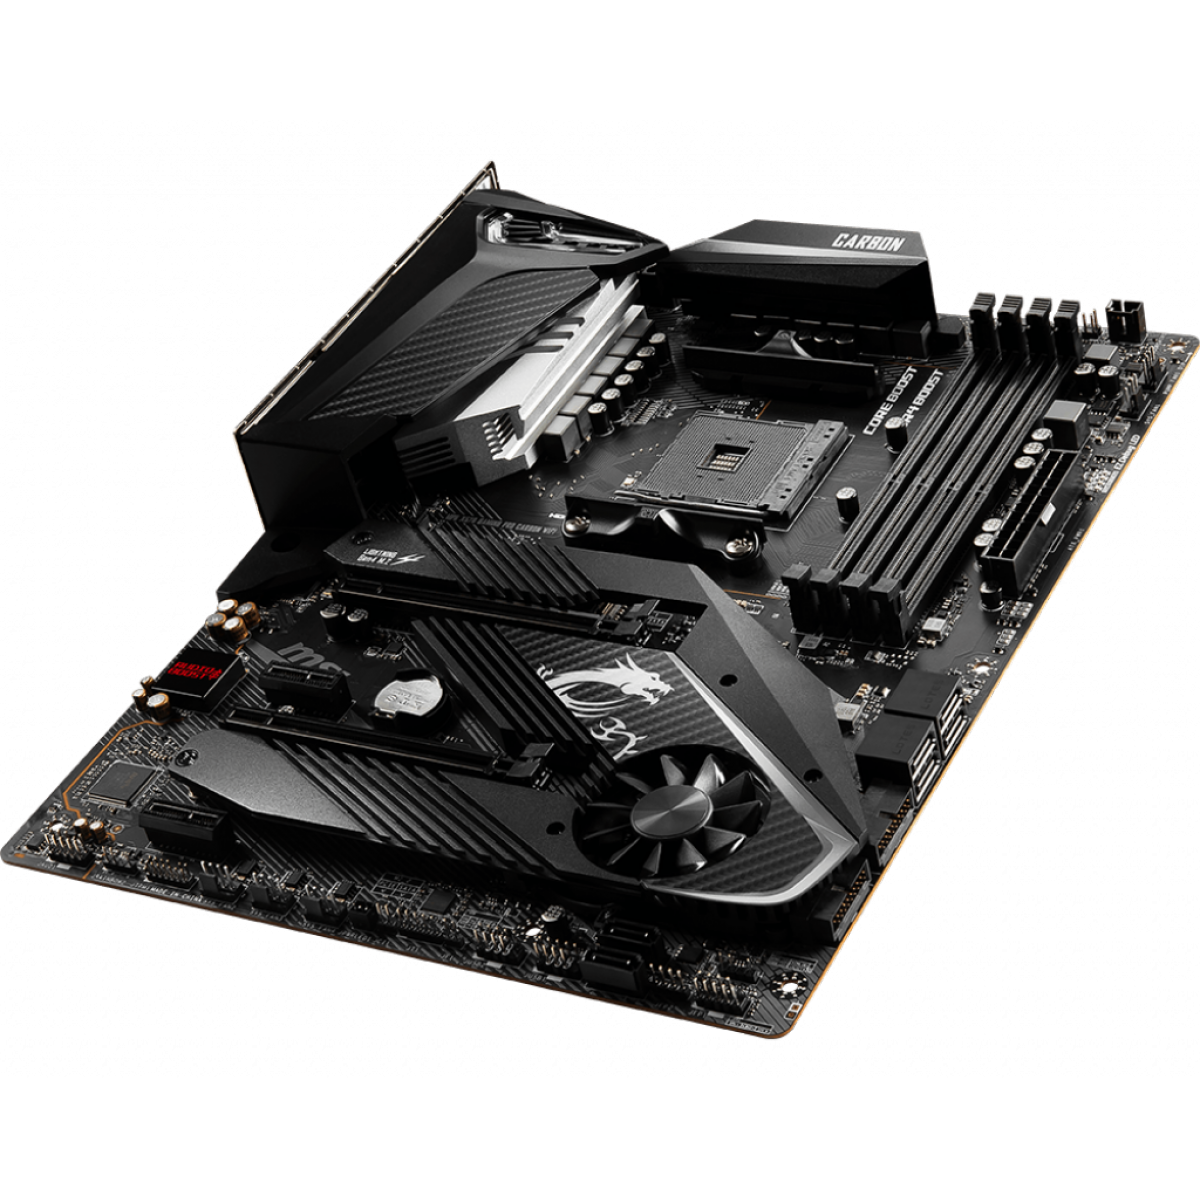 Placa Mãe MSI MPG X570 Gaming Pro Carbon Wifi, Chipset X570, AMD AM4, ATX, DDR4